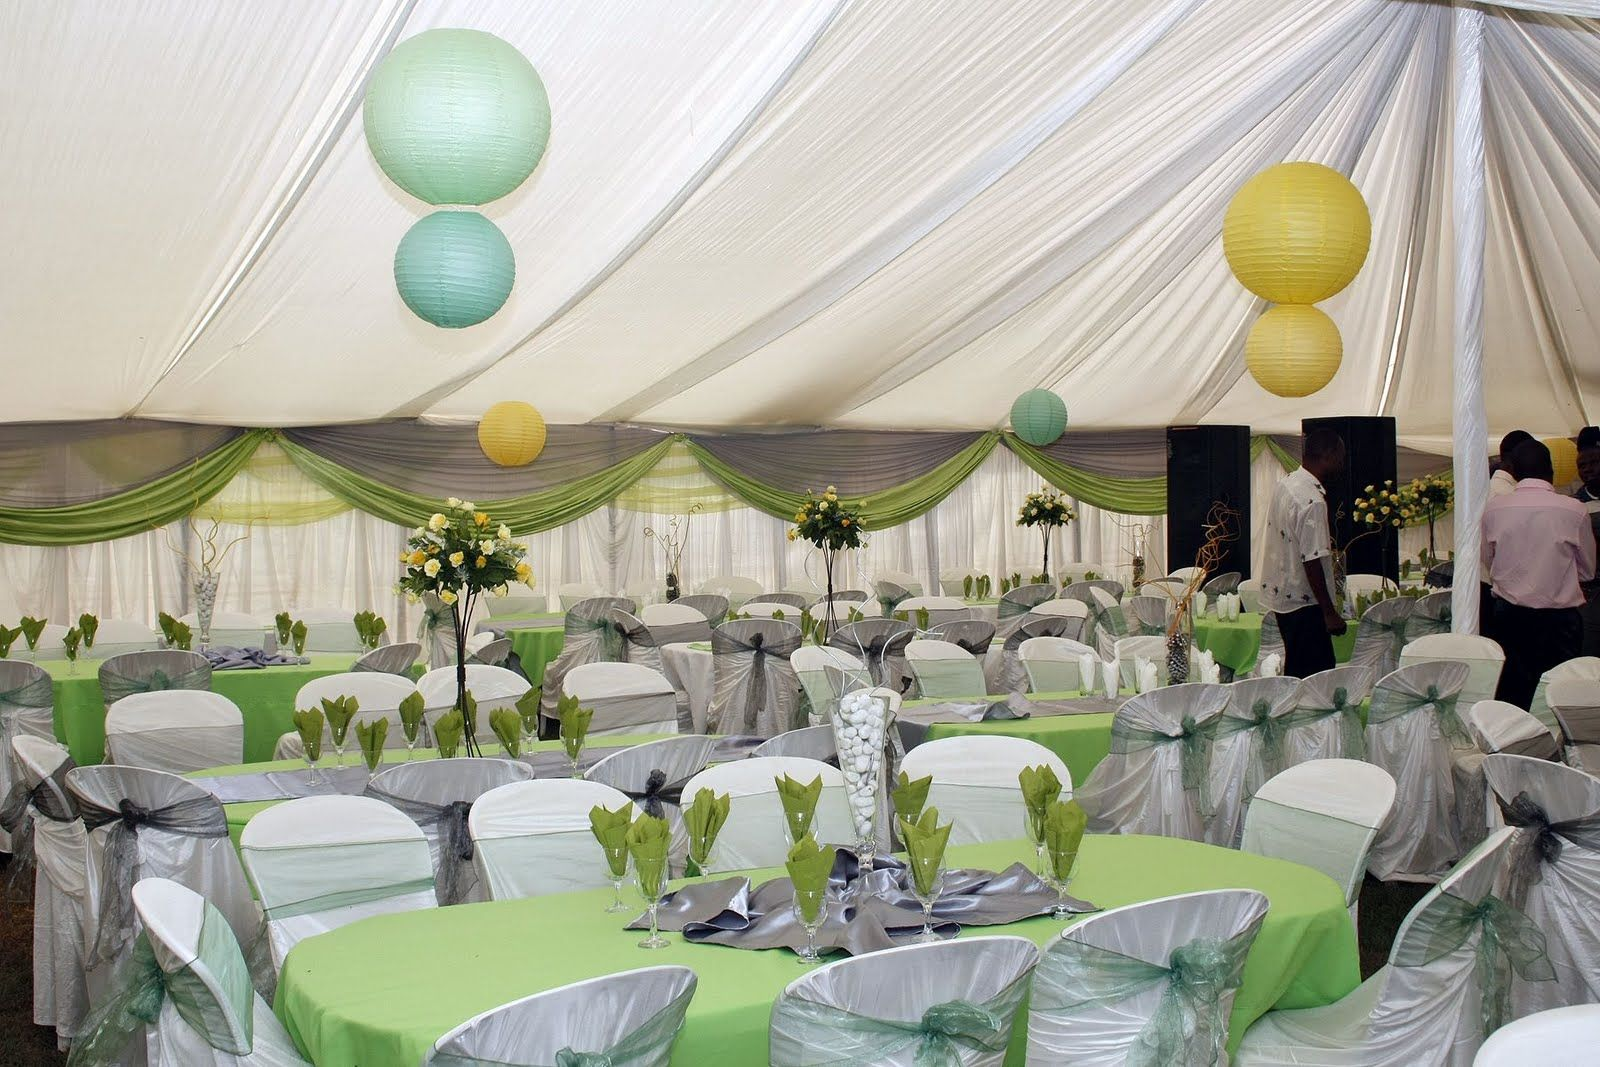 Garden Wedding Reception Decoration Ideas How To Make Simple Wedding Decorations Simple Modern